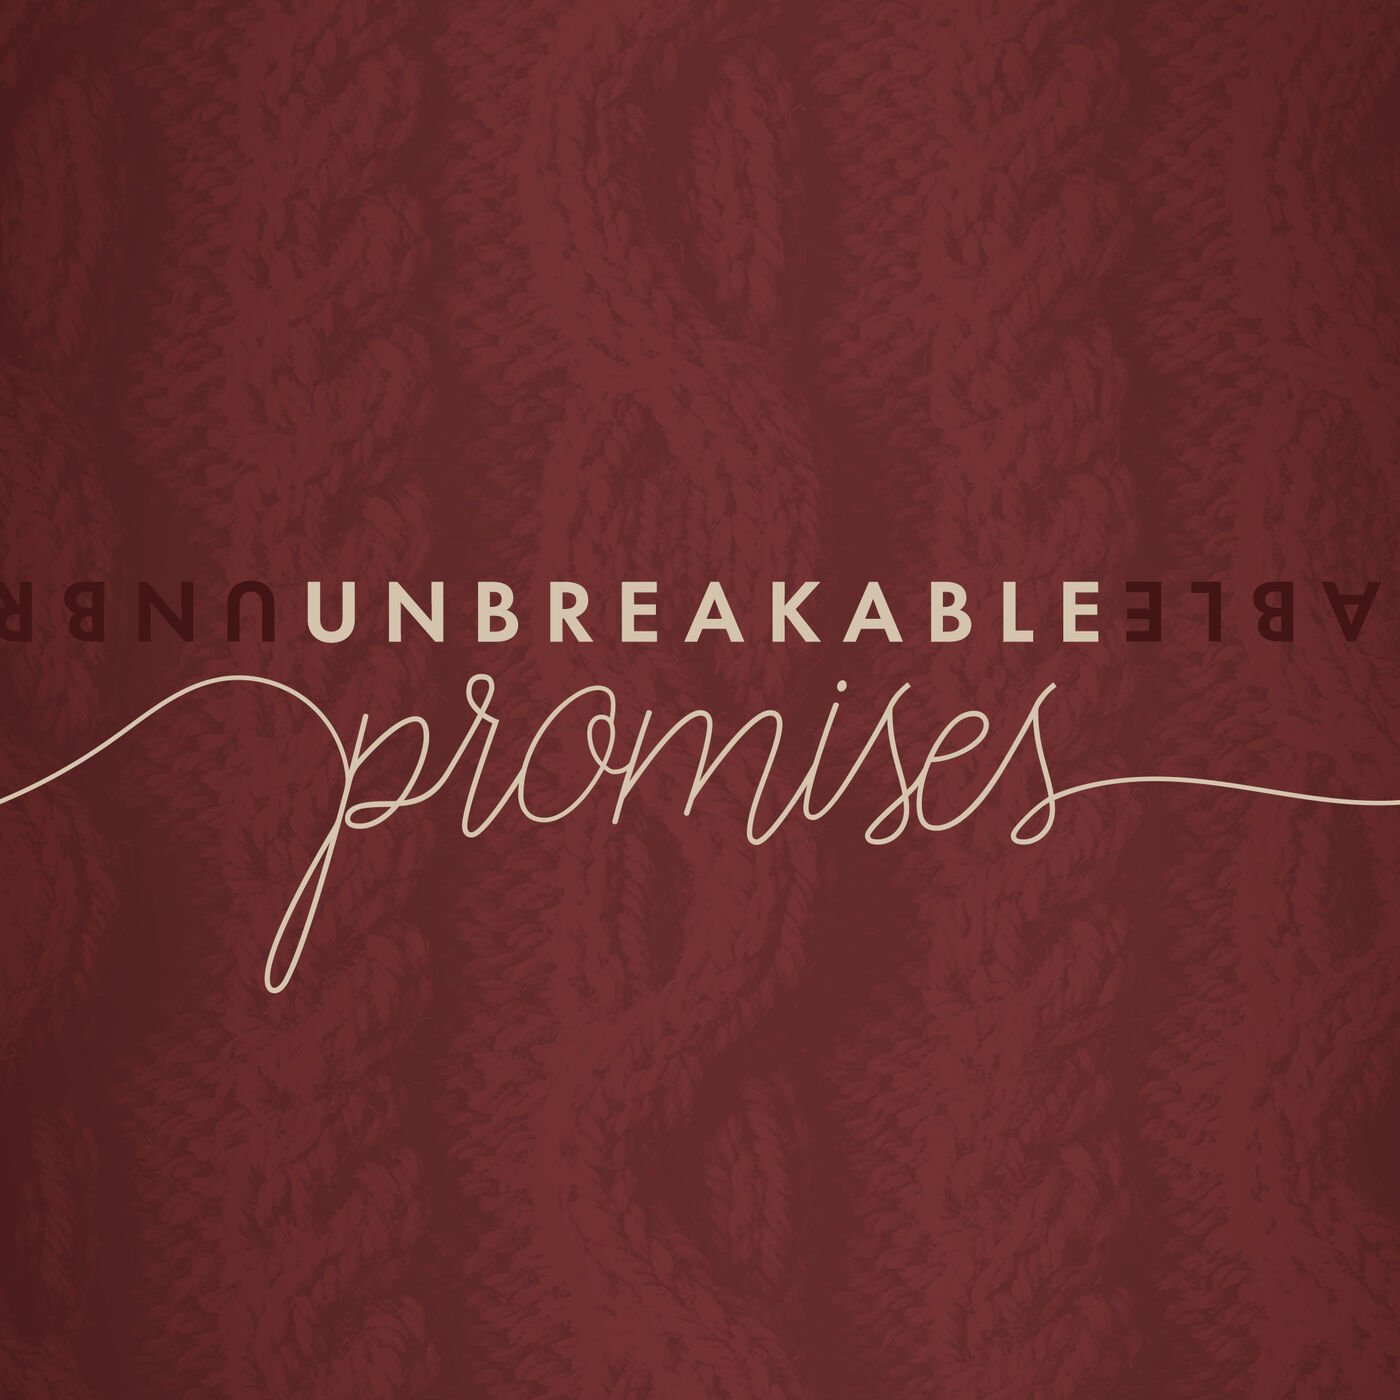 Unbreakable Promises - To Dwell with Us (Week 5)